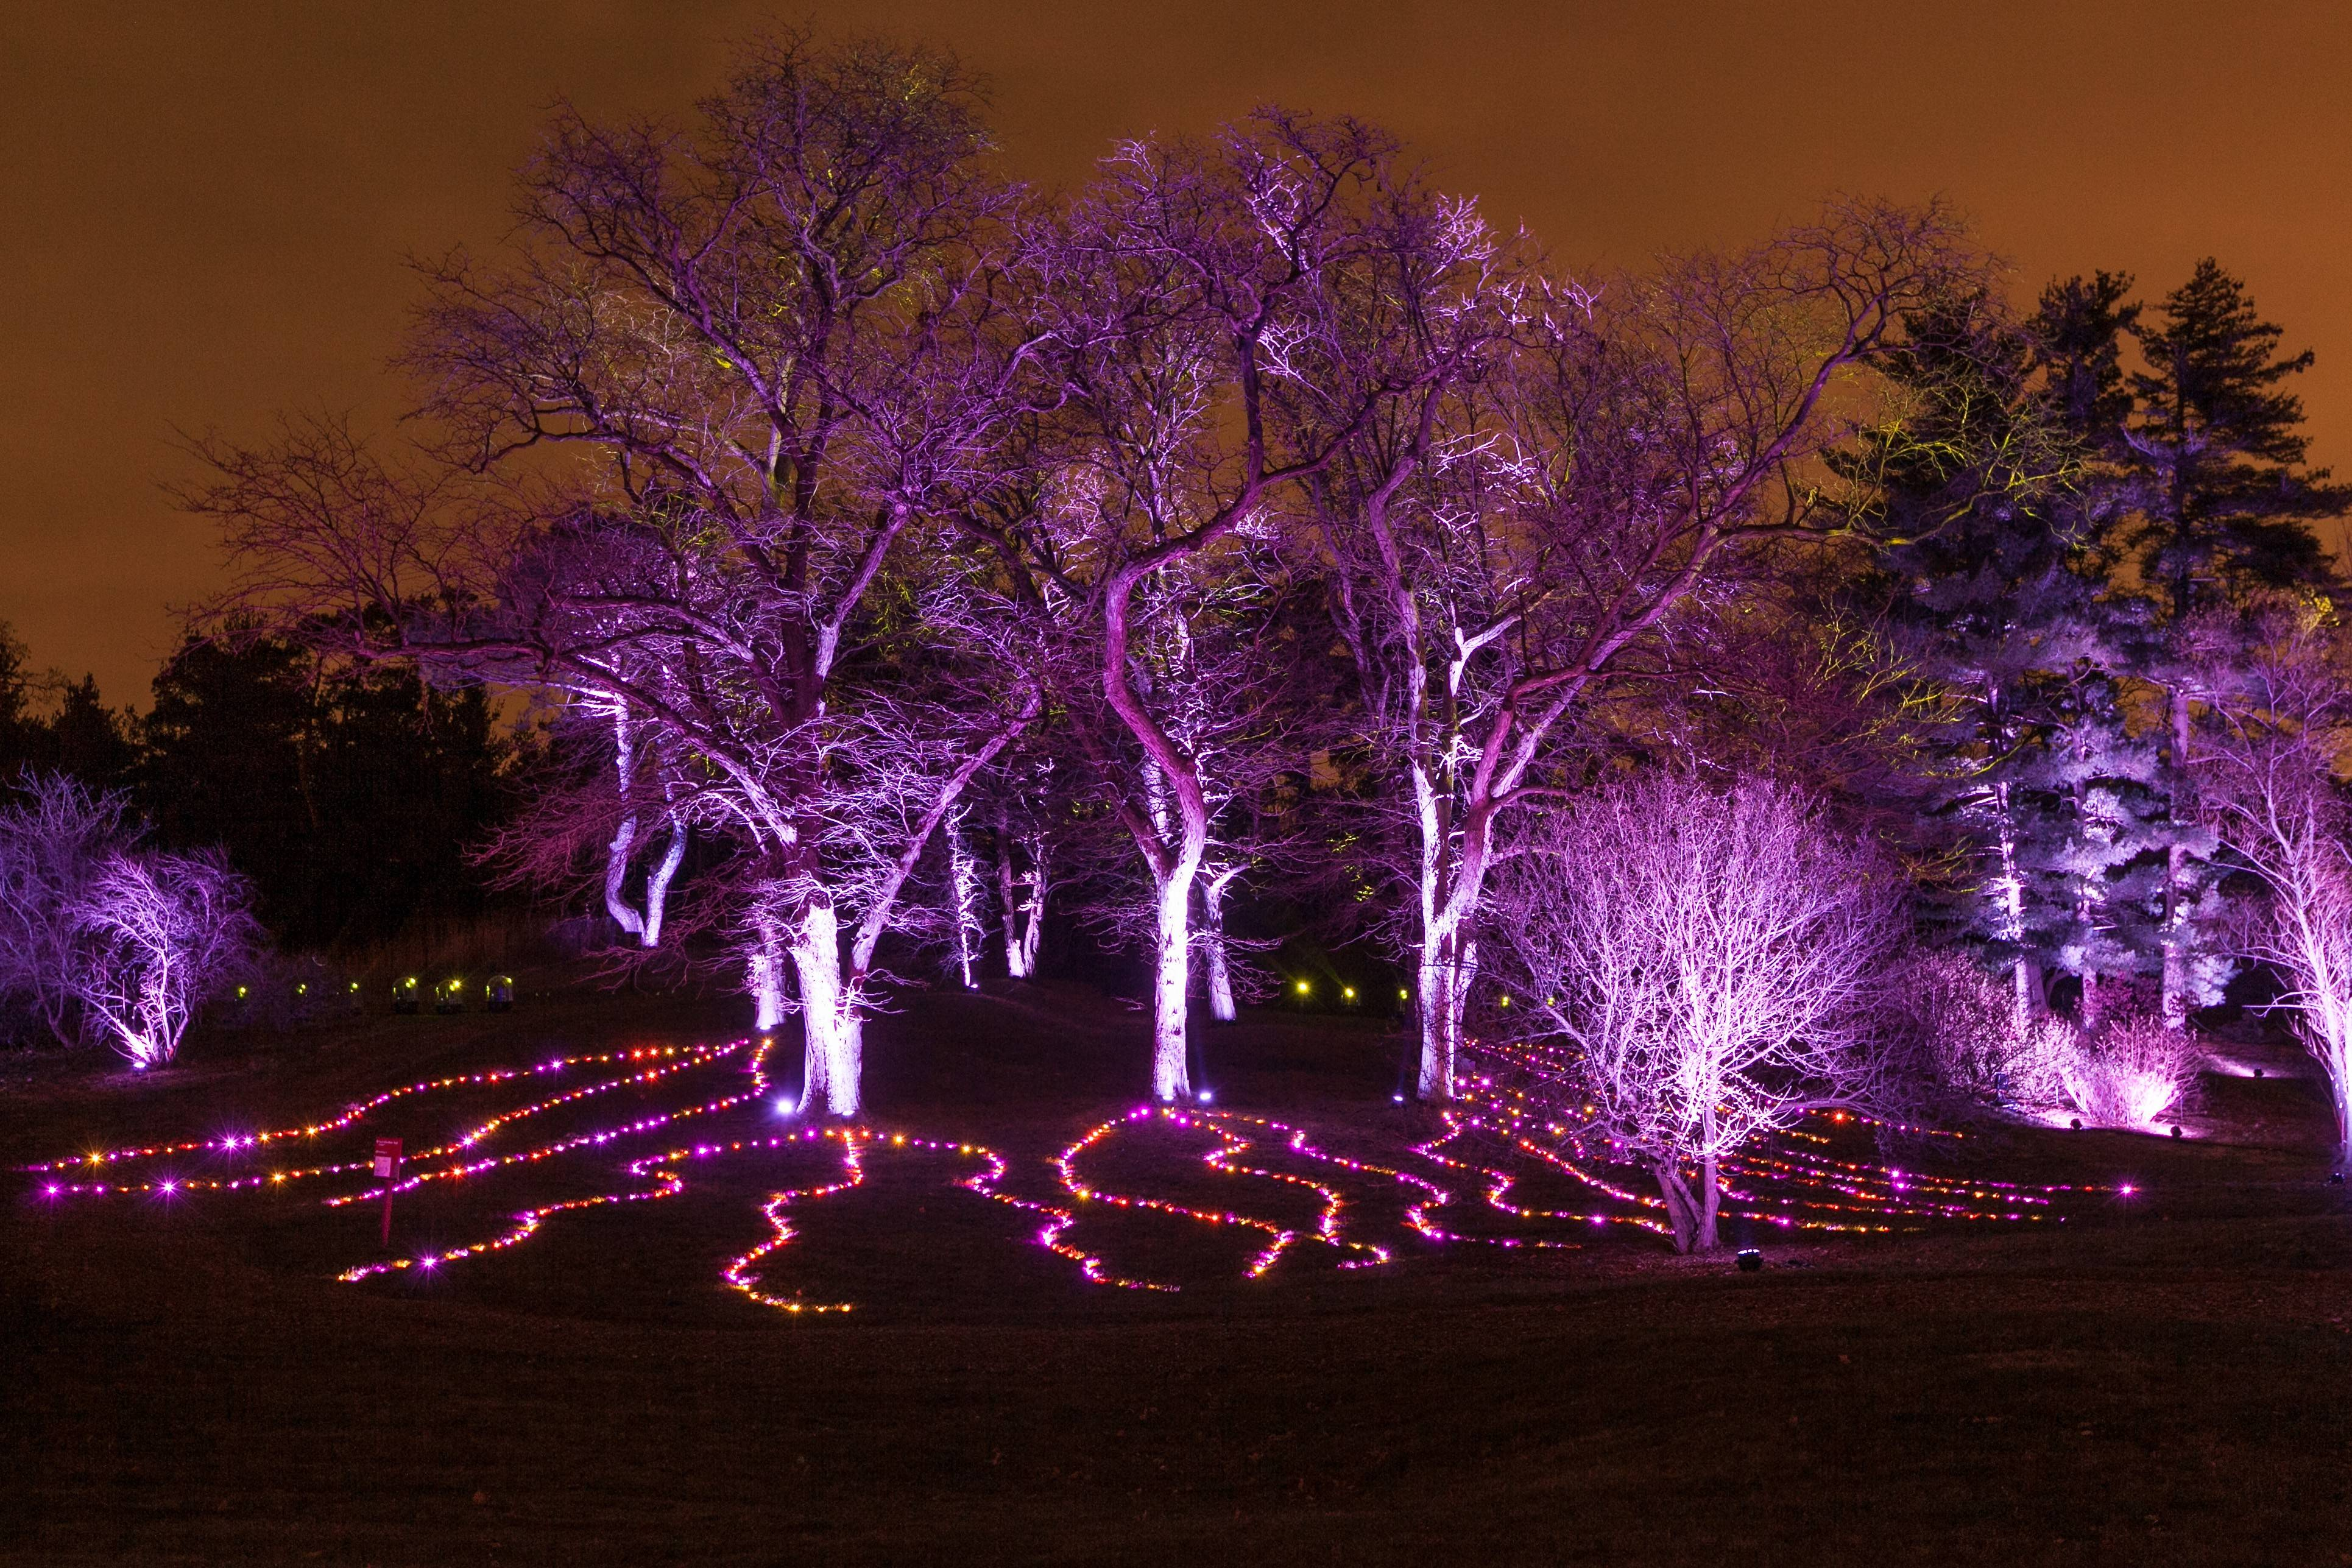 Mother Nature provides a dramatic background for interactive holiday lighting at Morton Arboretum's Illumination: Tree Lights.